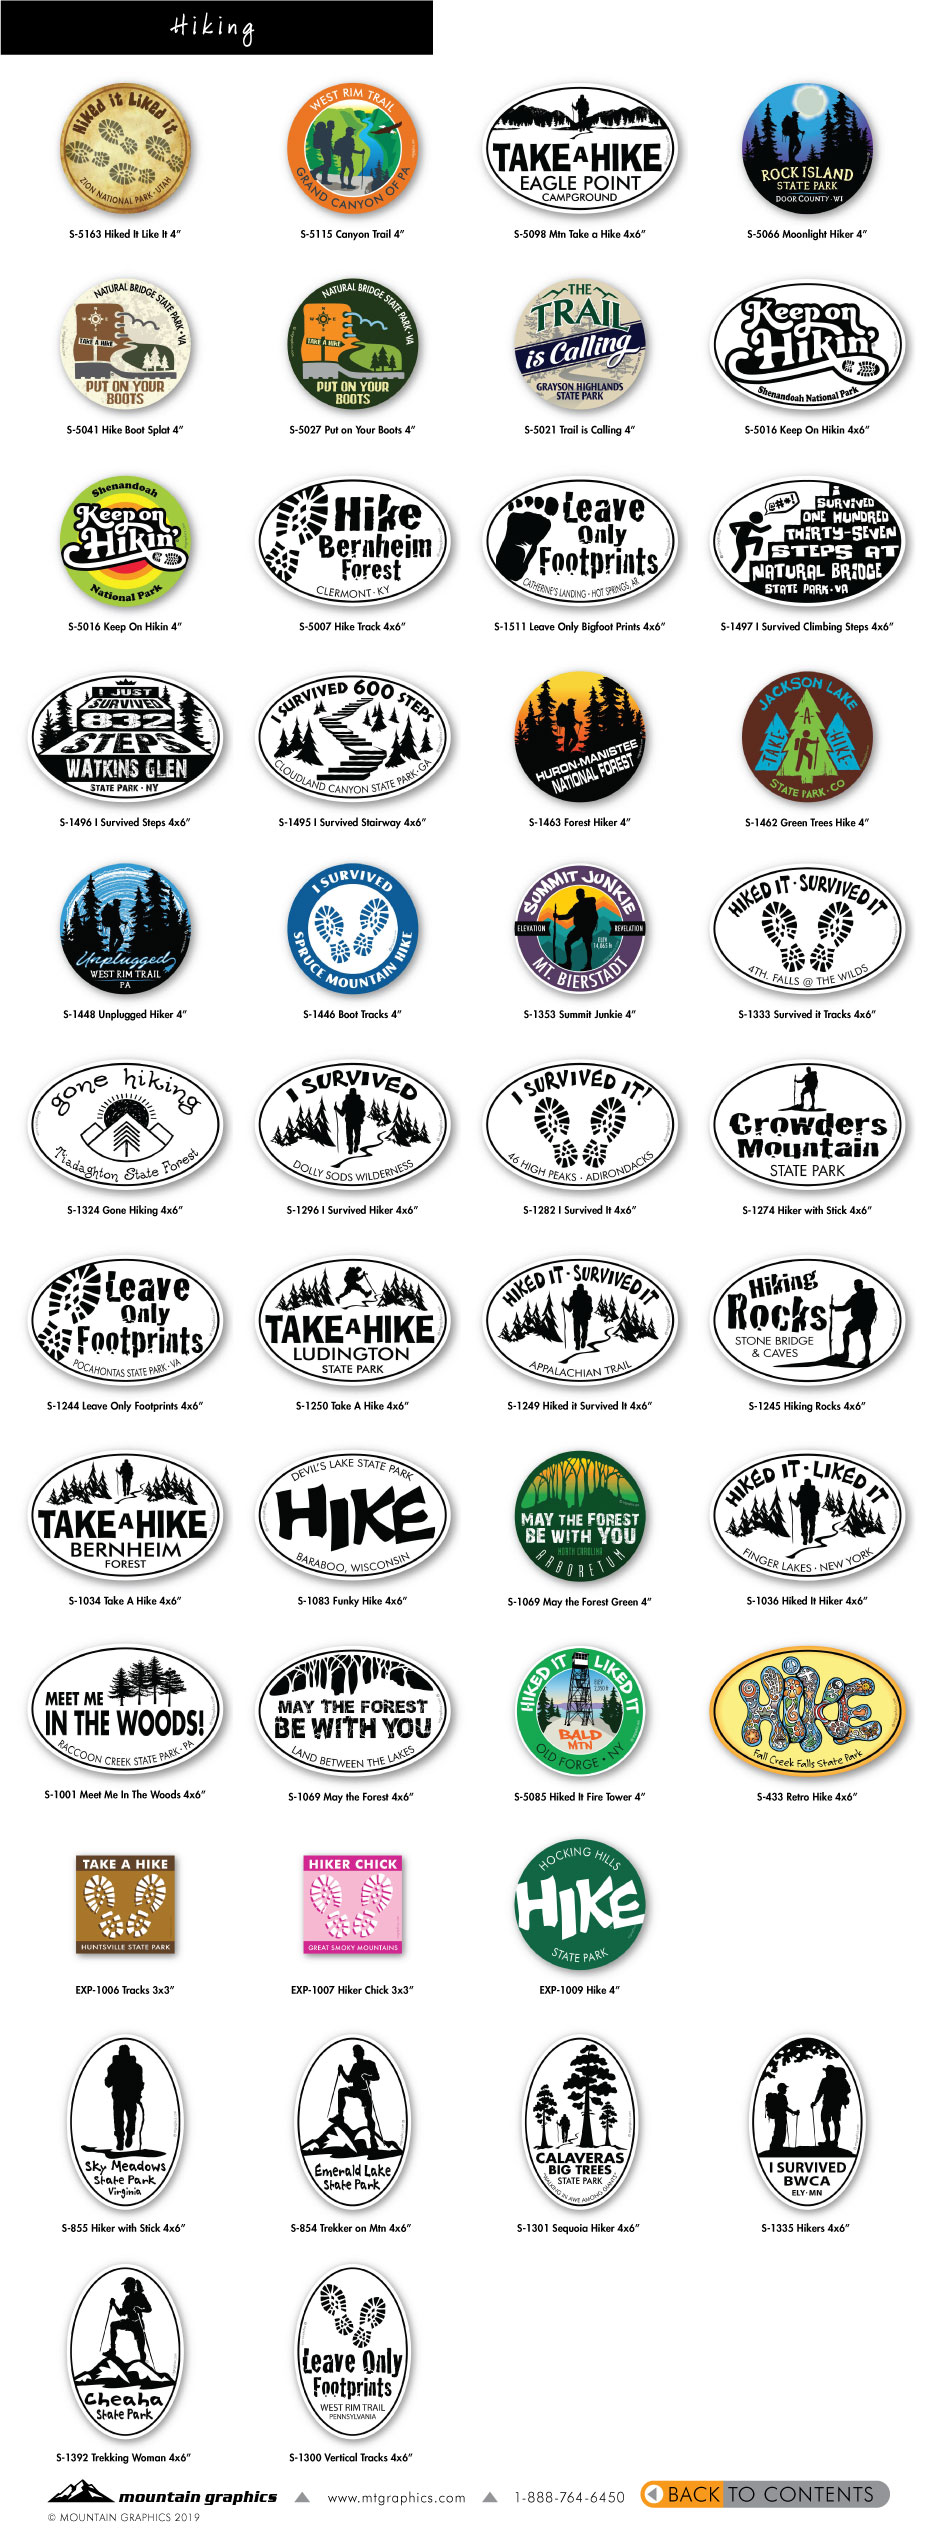 2019-digital-catalog-stickers20.jpg